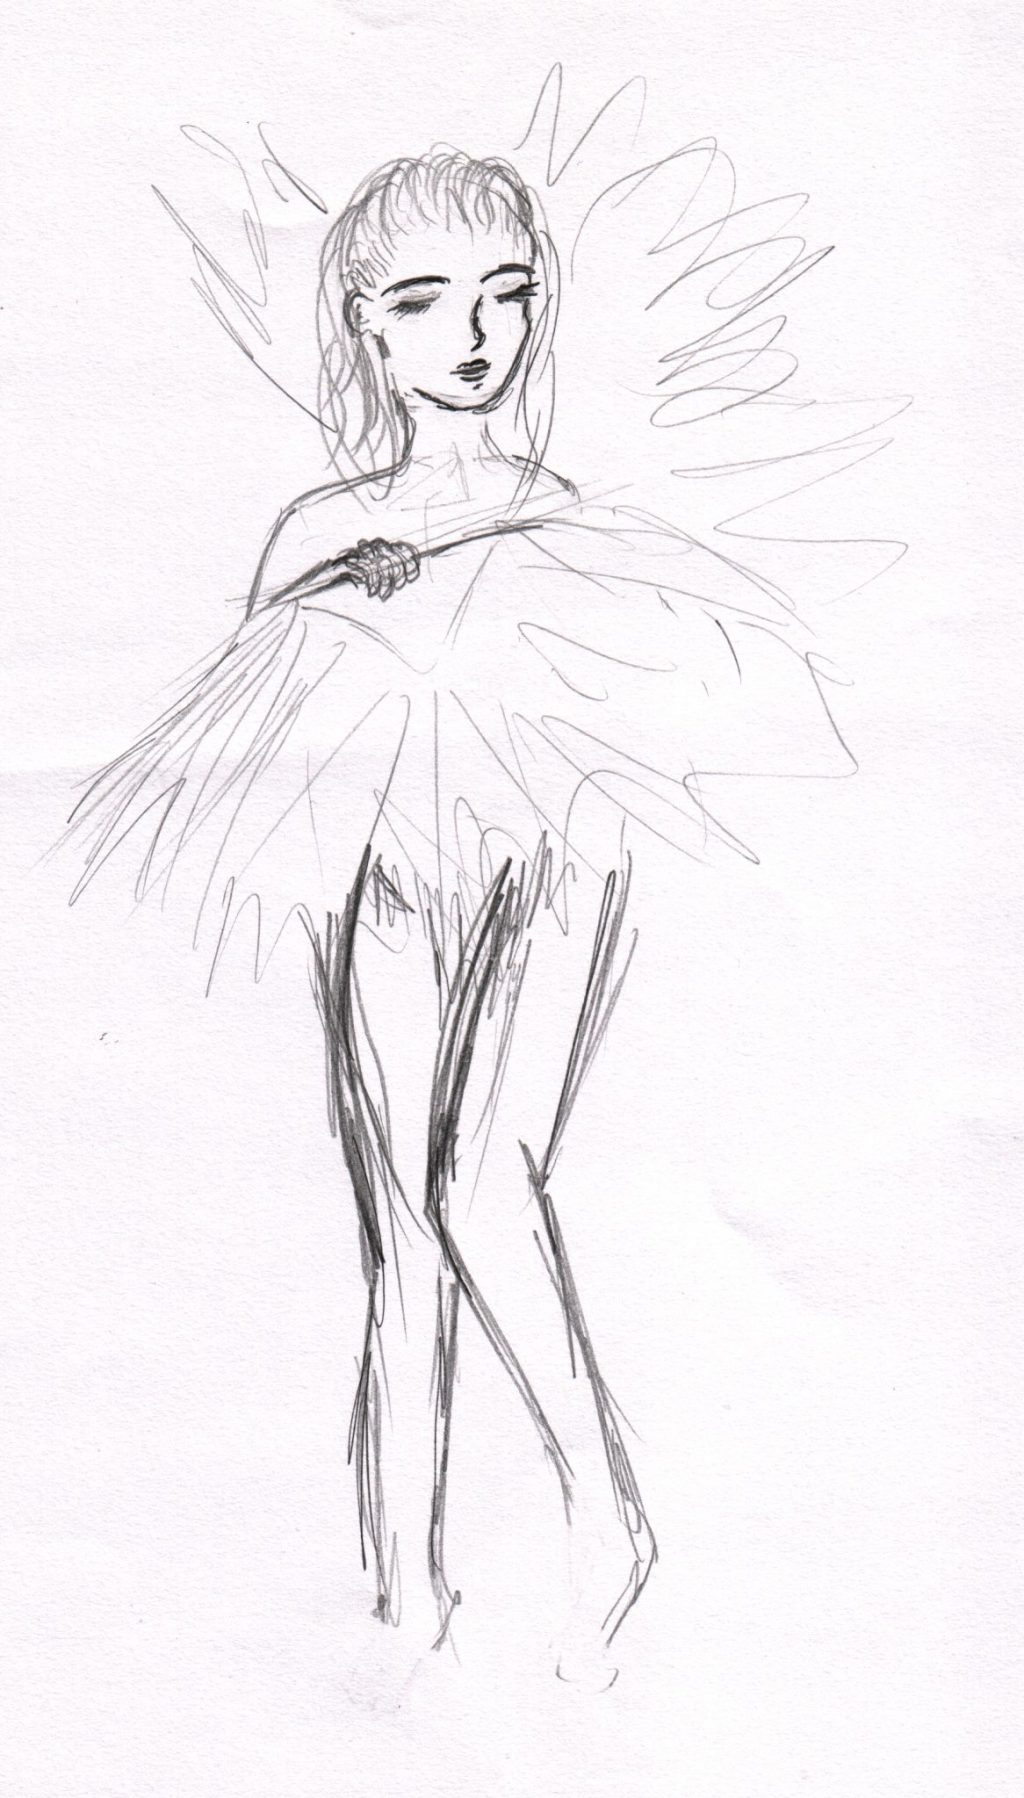 A sketch of a woman performing a fan dance, the fan is held infront of her obscuring most of her body, her legs, head and shoulders are visible.